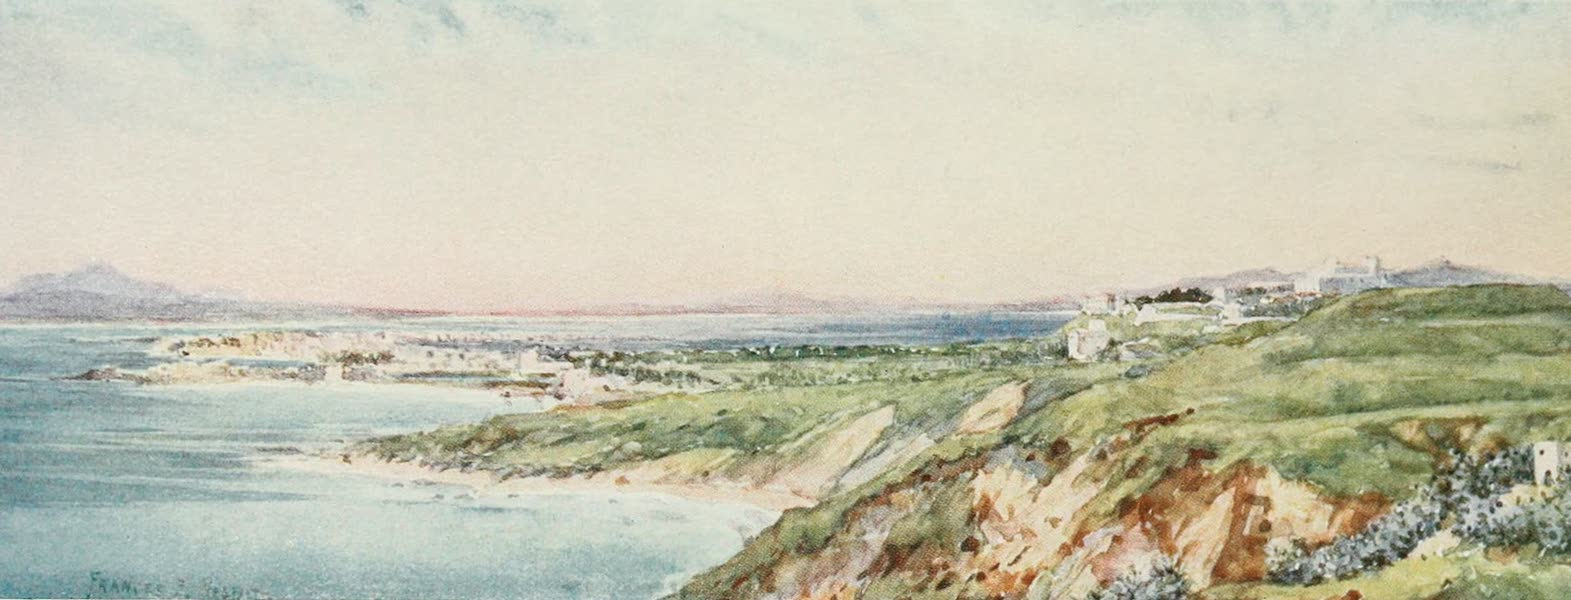 Algeria and Tunis, Painted and Described - The Site of Carthage from Sidi Bou Said (1906)